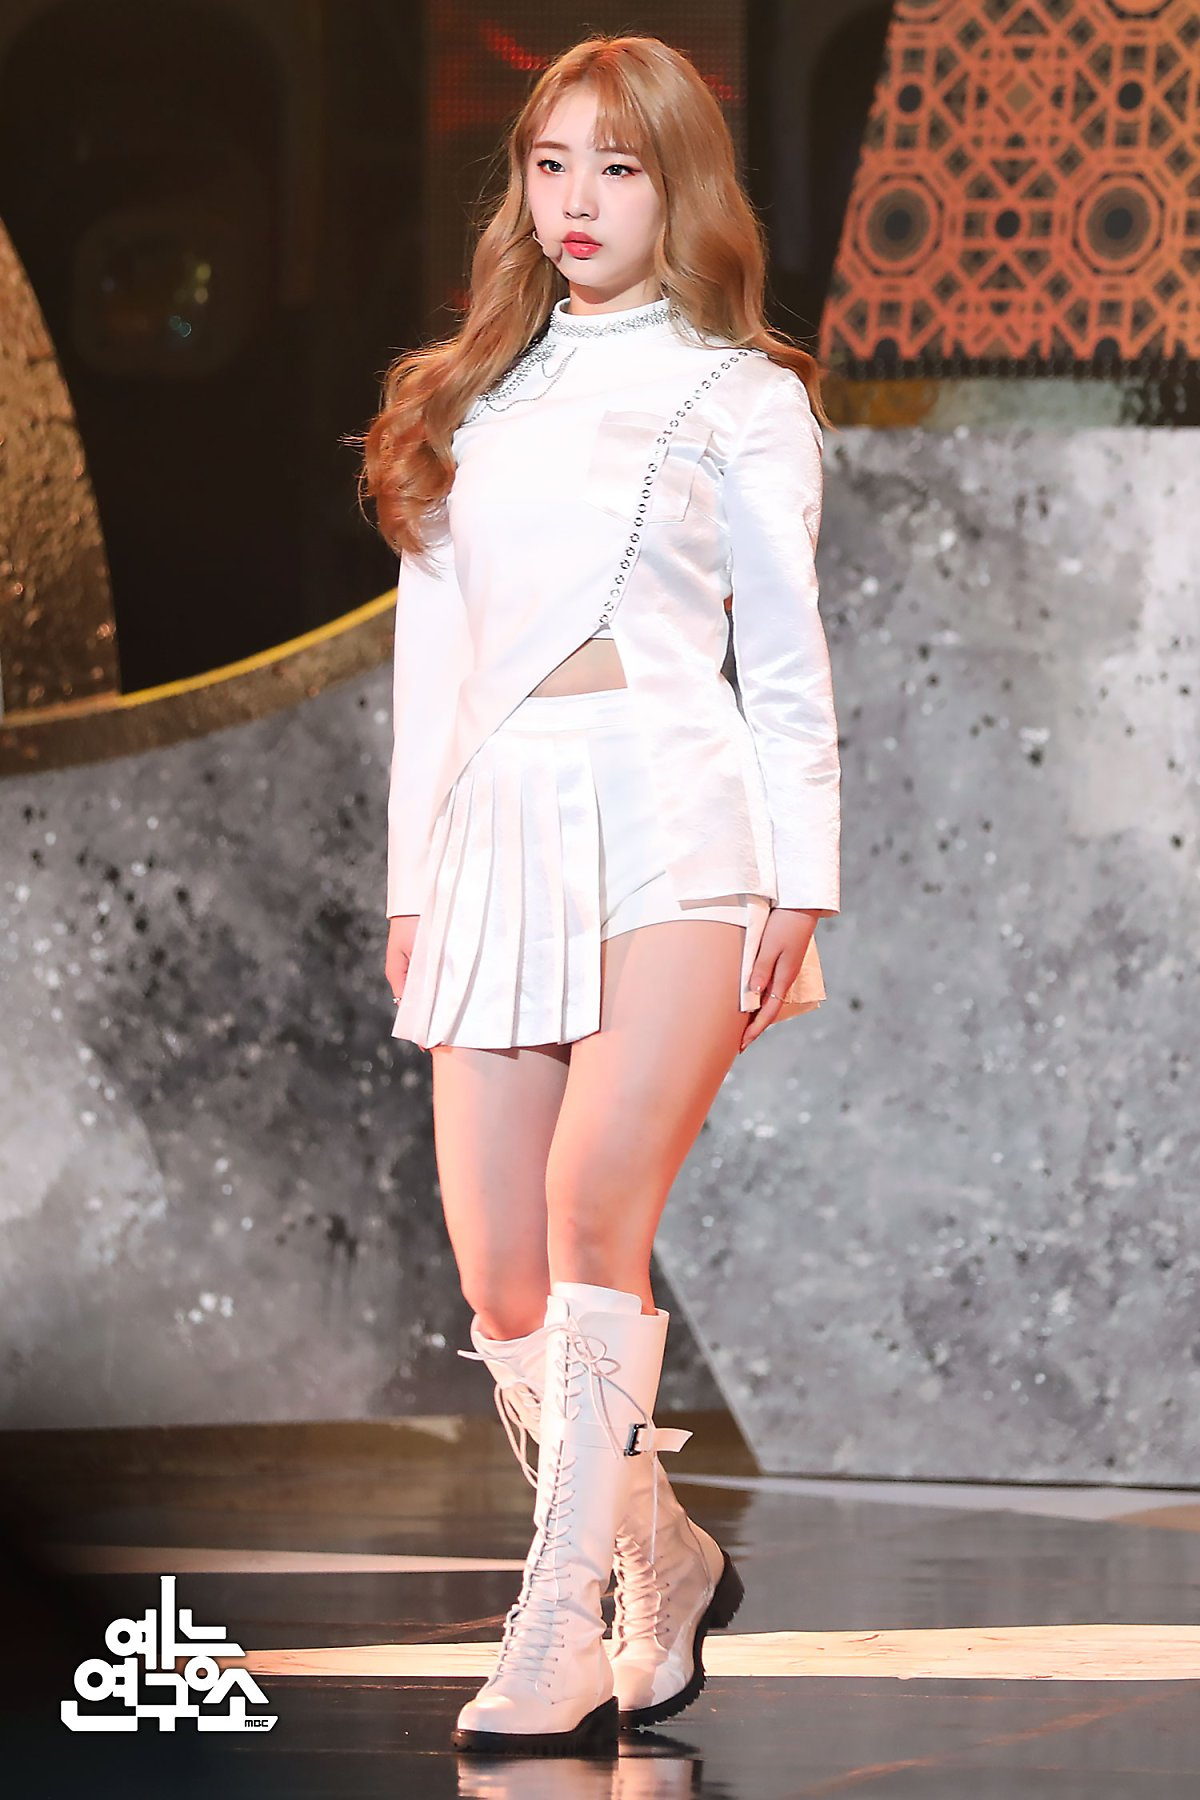 200208 Show Champion Stage So What YeoJin 1.jpg